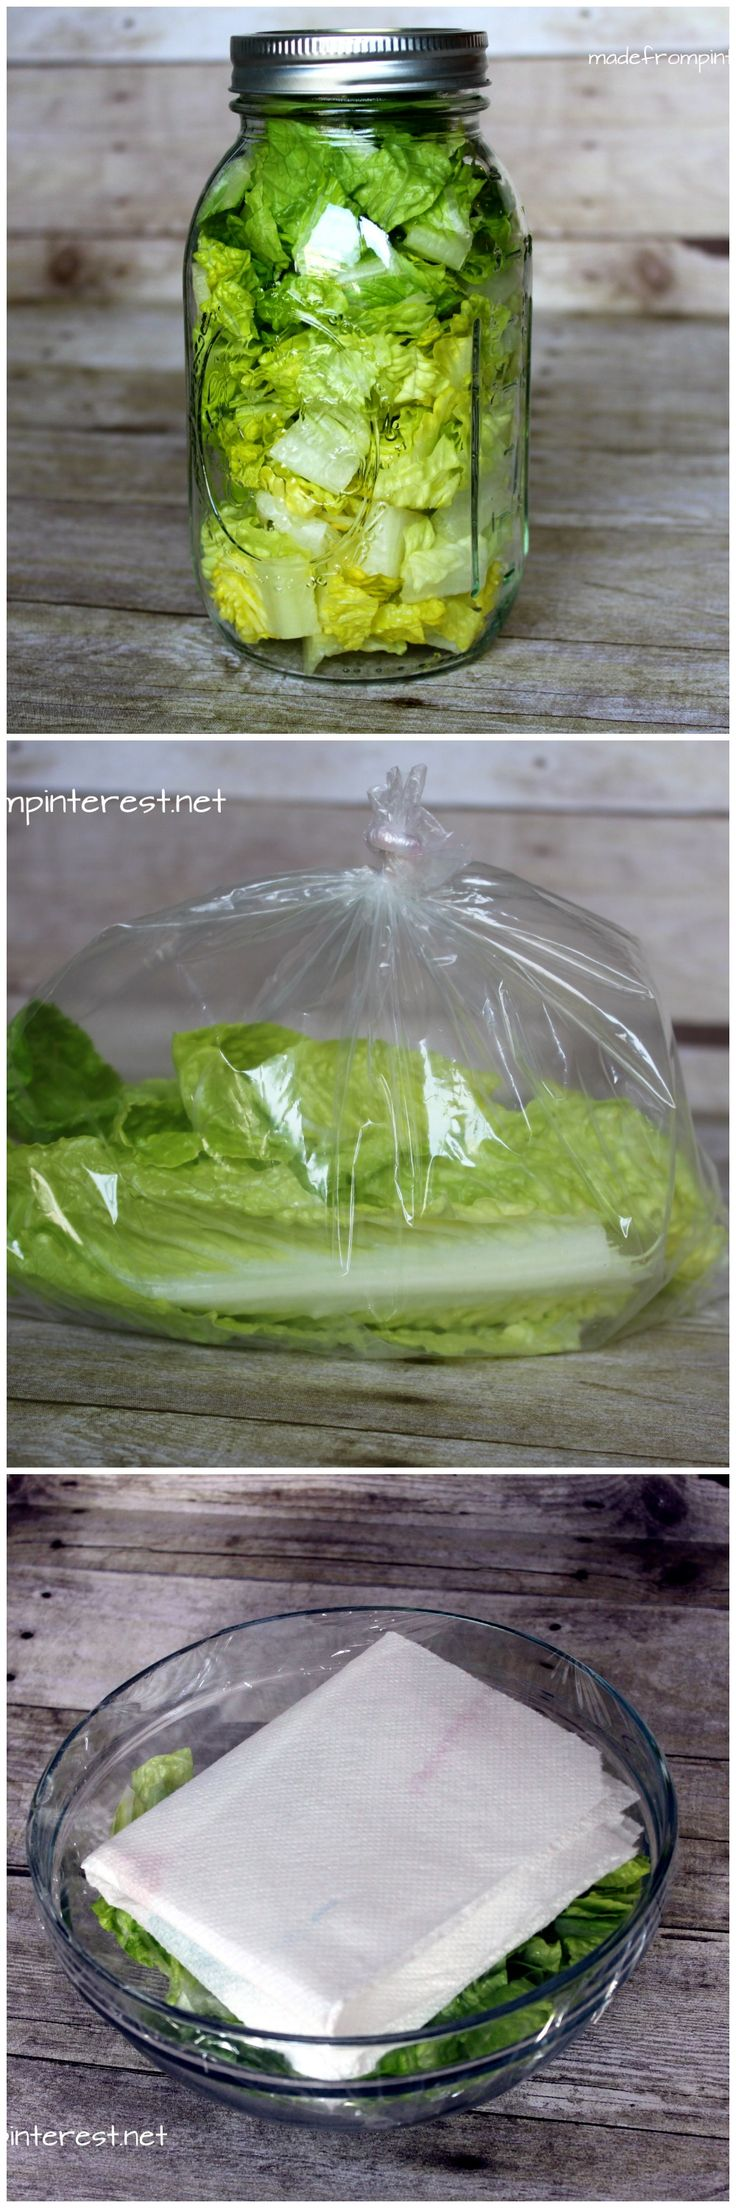 How to store lettuce so it will last longer, no more brown wilted lettuce in the fridge!